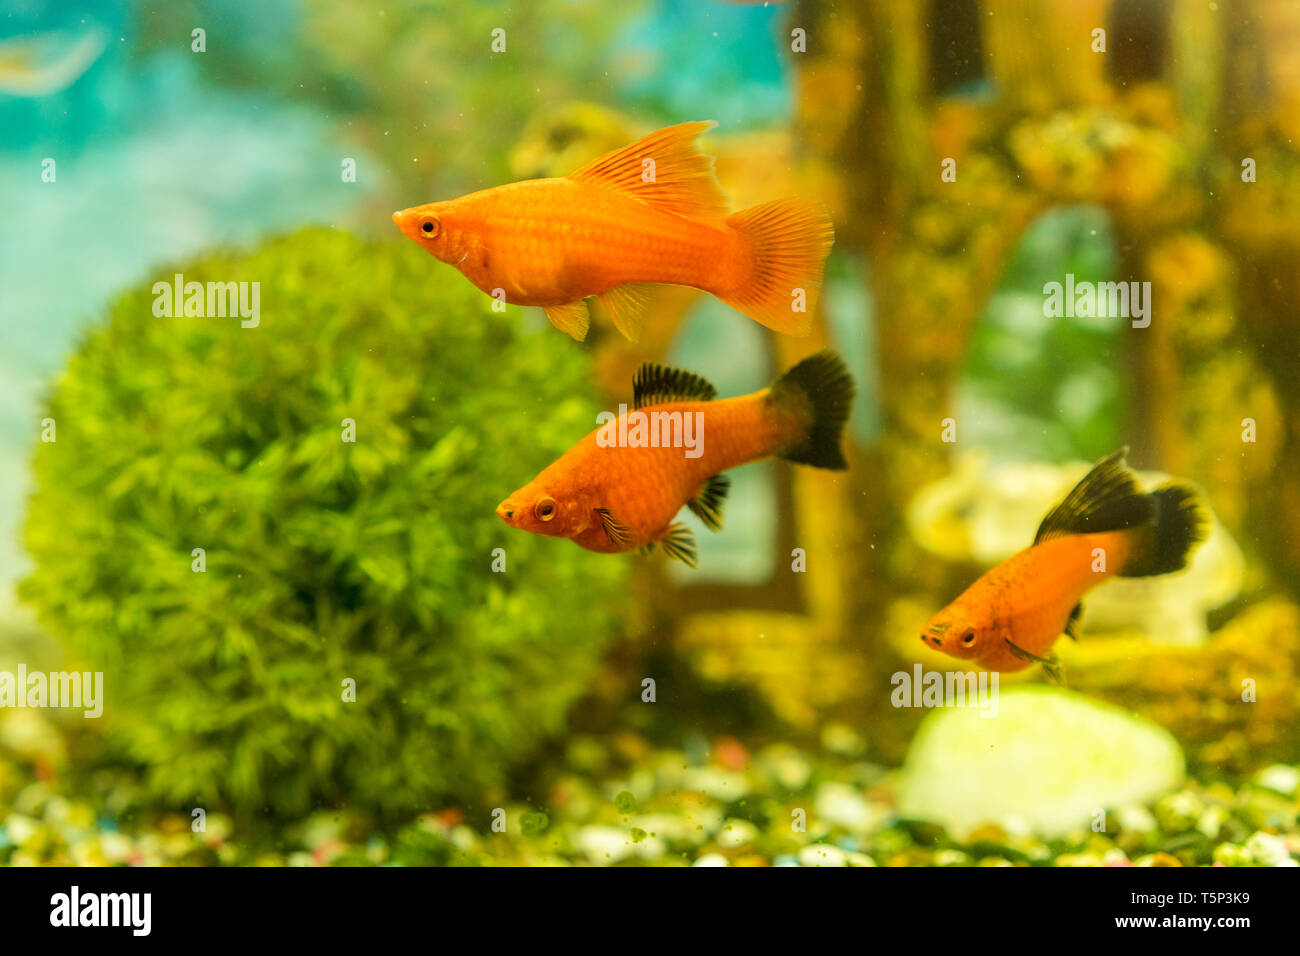 Tropical colorful fishes swimming in aquarium with plants. fish in freshwater aquarium with green beautiful planted tropical. Stock Photo